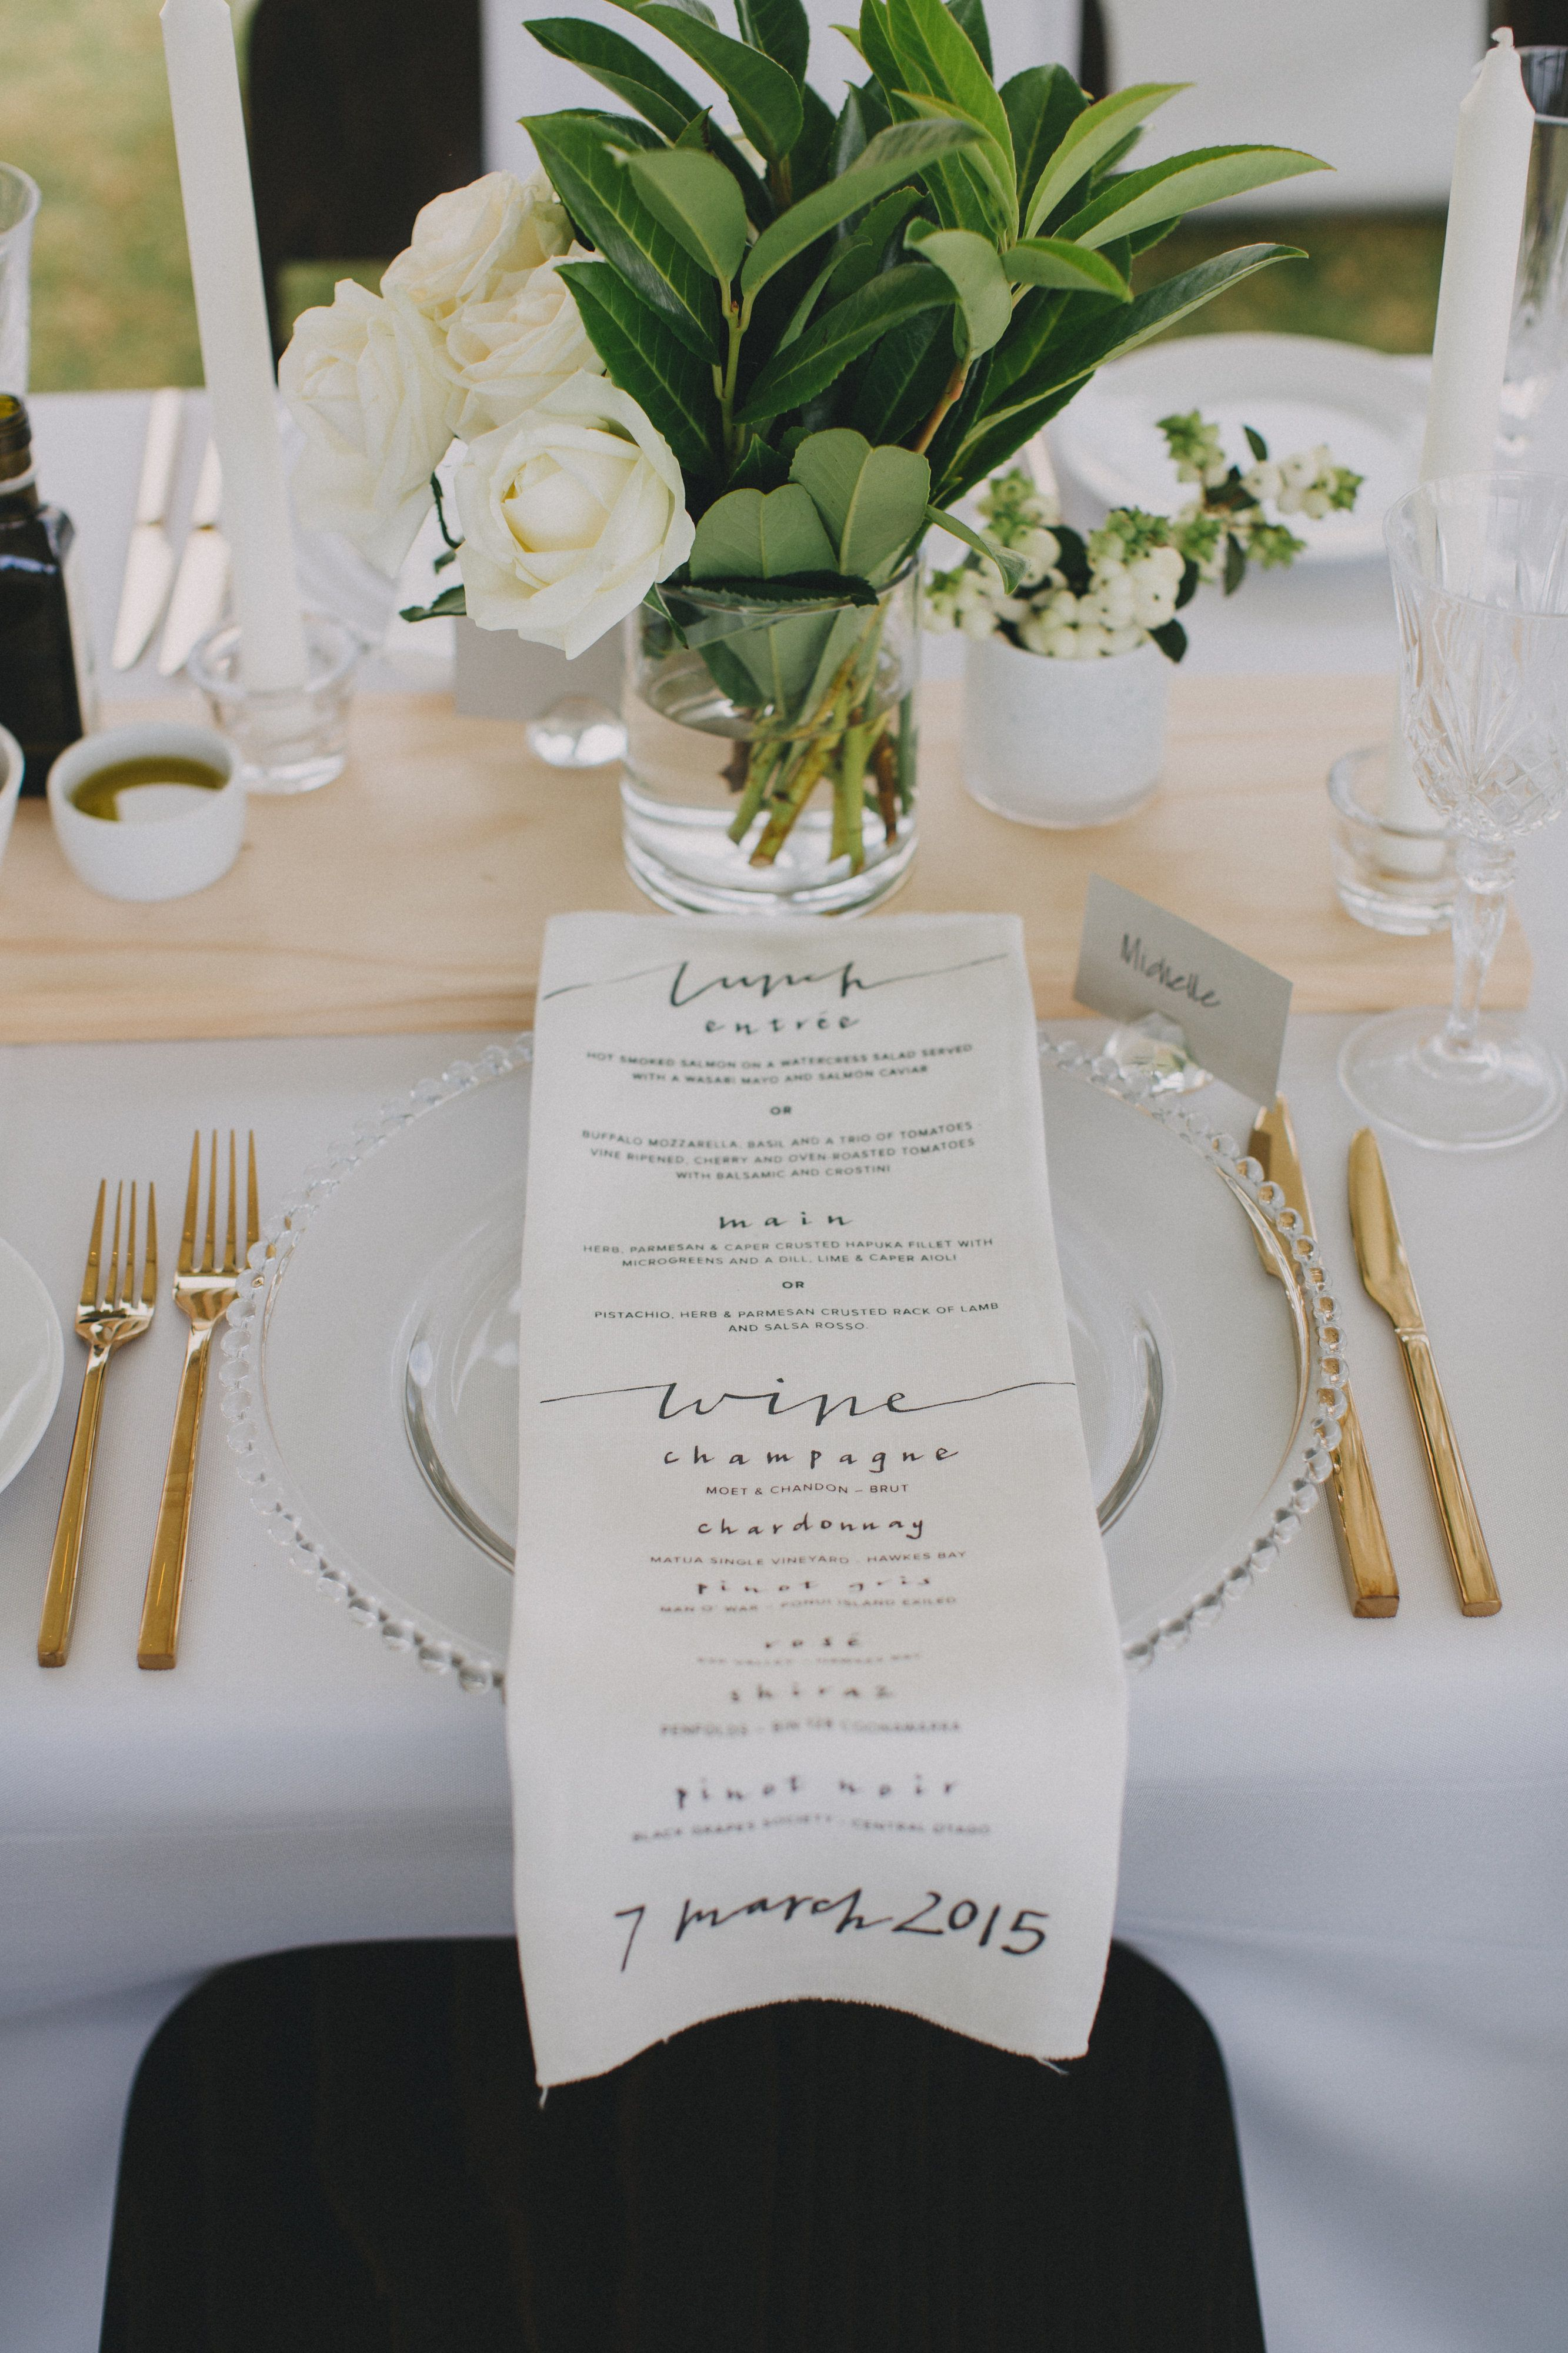 A hilltop wedding planned in just 10 weeks gold cutlery wedding a hilltop wedding planned in just 10 weeks junglespirit Gallery